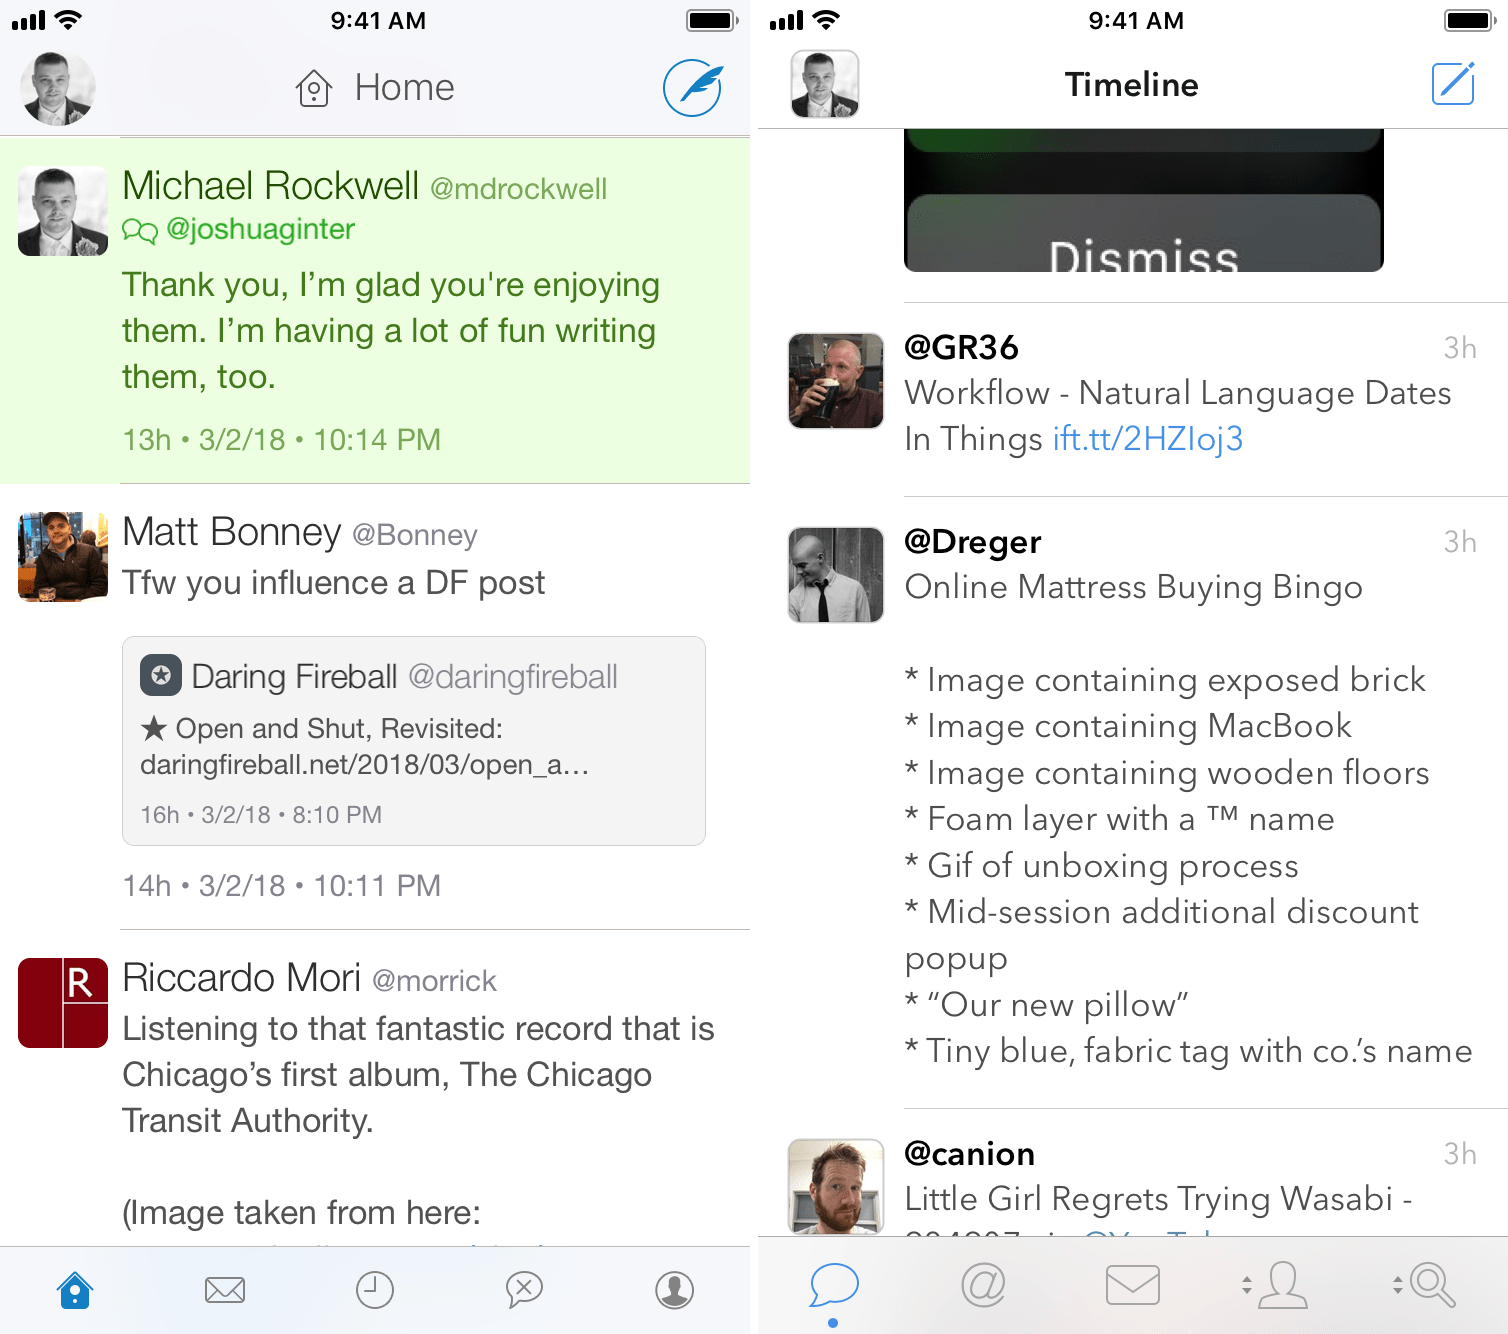 Twitterrific and Tweetbot